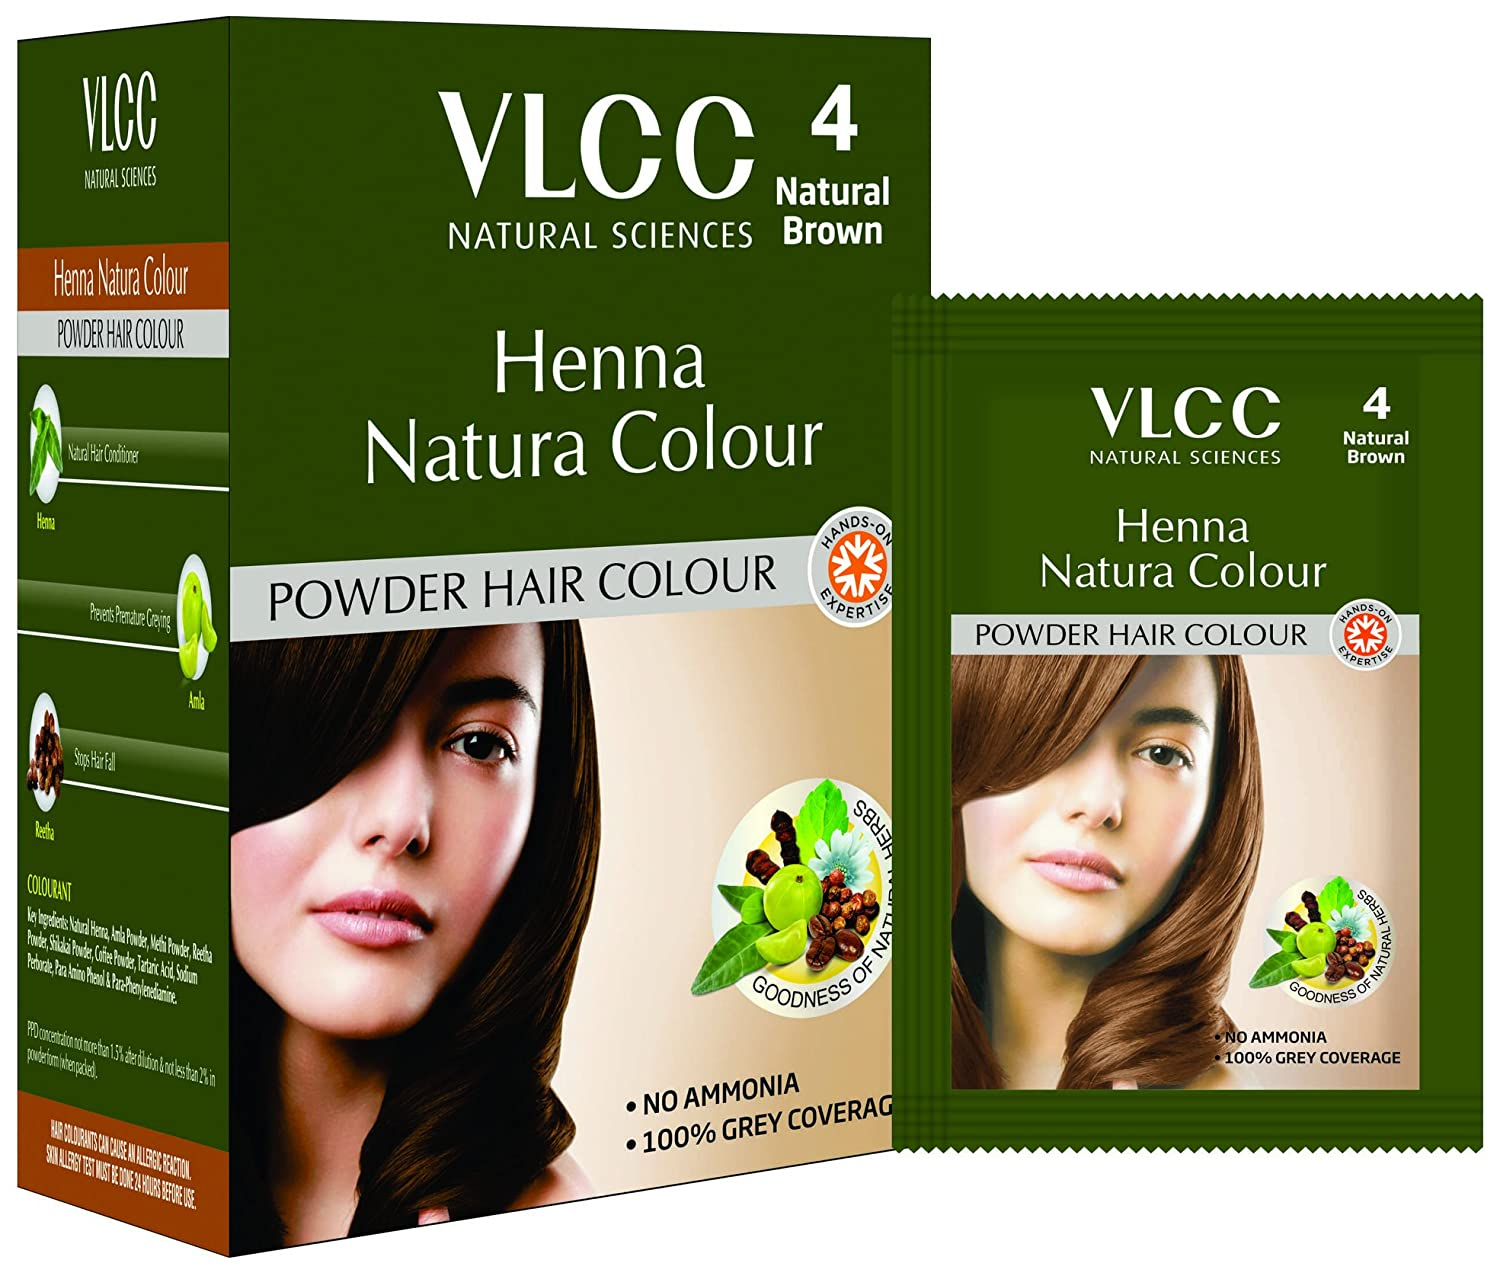 Buy VLCC Henna Natura Colour Natural Brown Online at Low Prices in ...